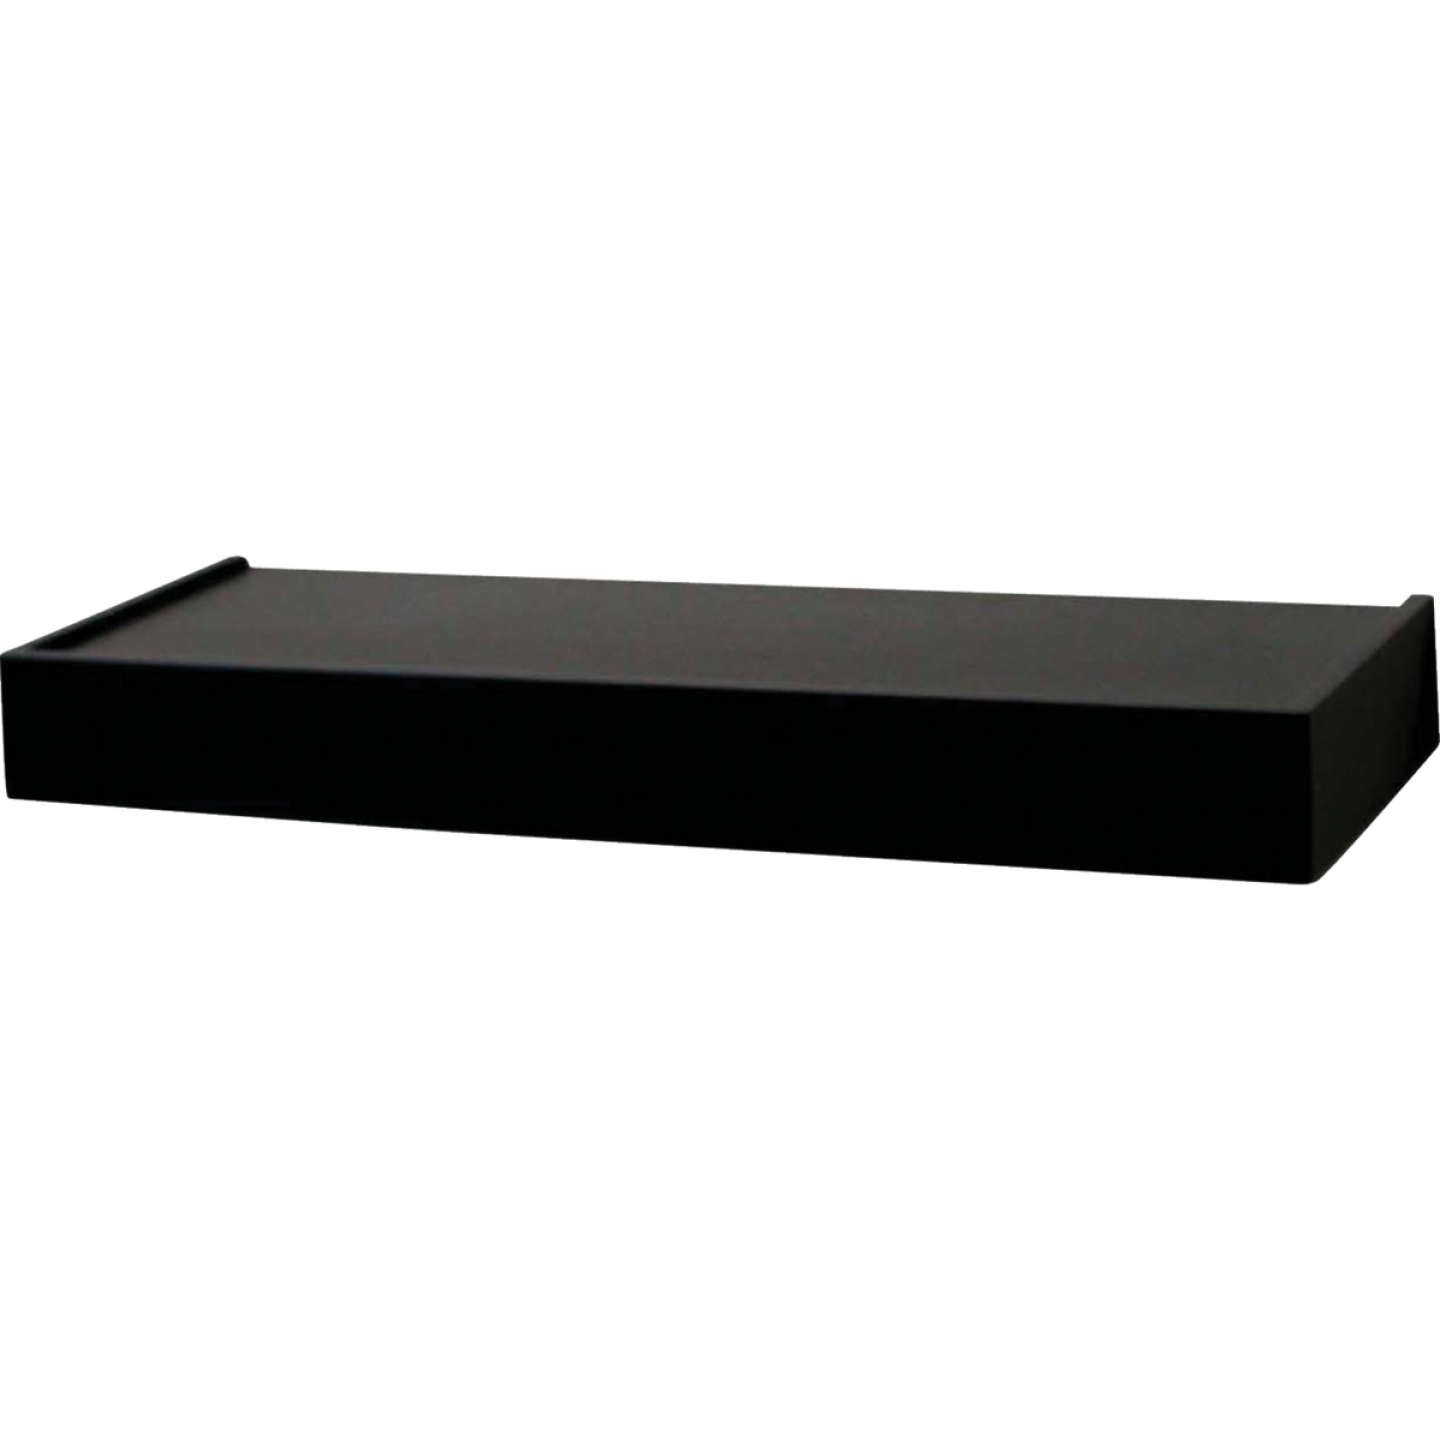 John Sterling Corp 24 In. Black Floating Decorative Shelf Image 1